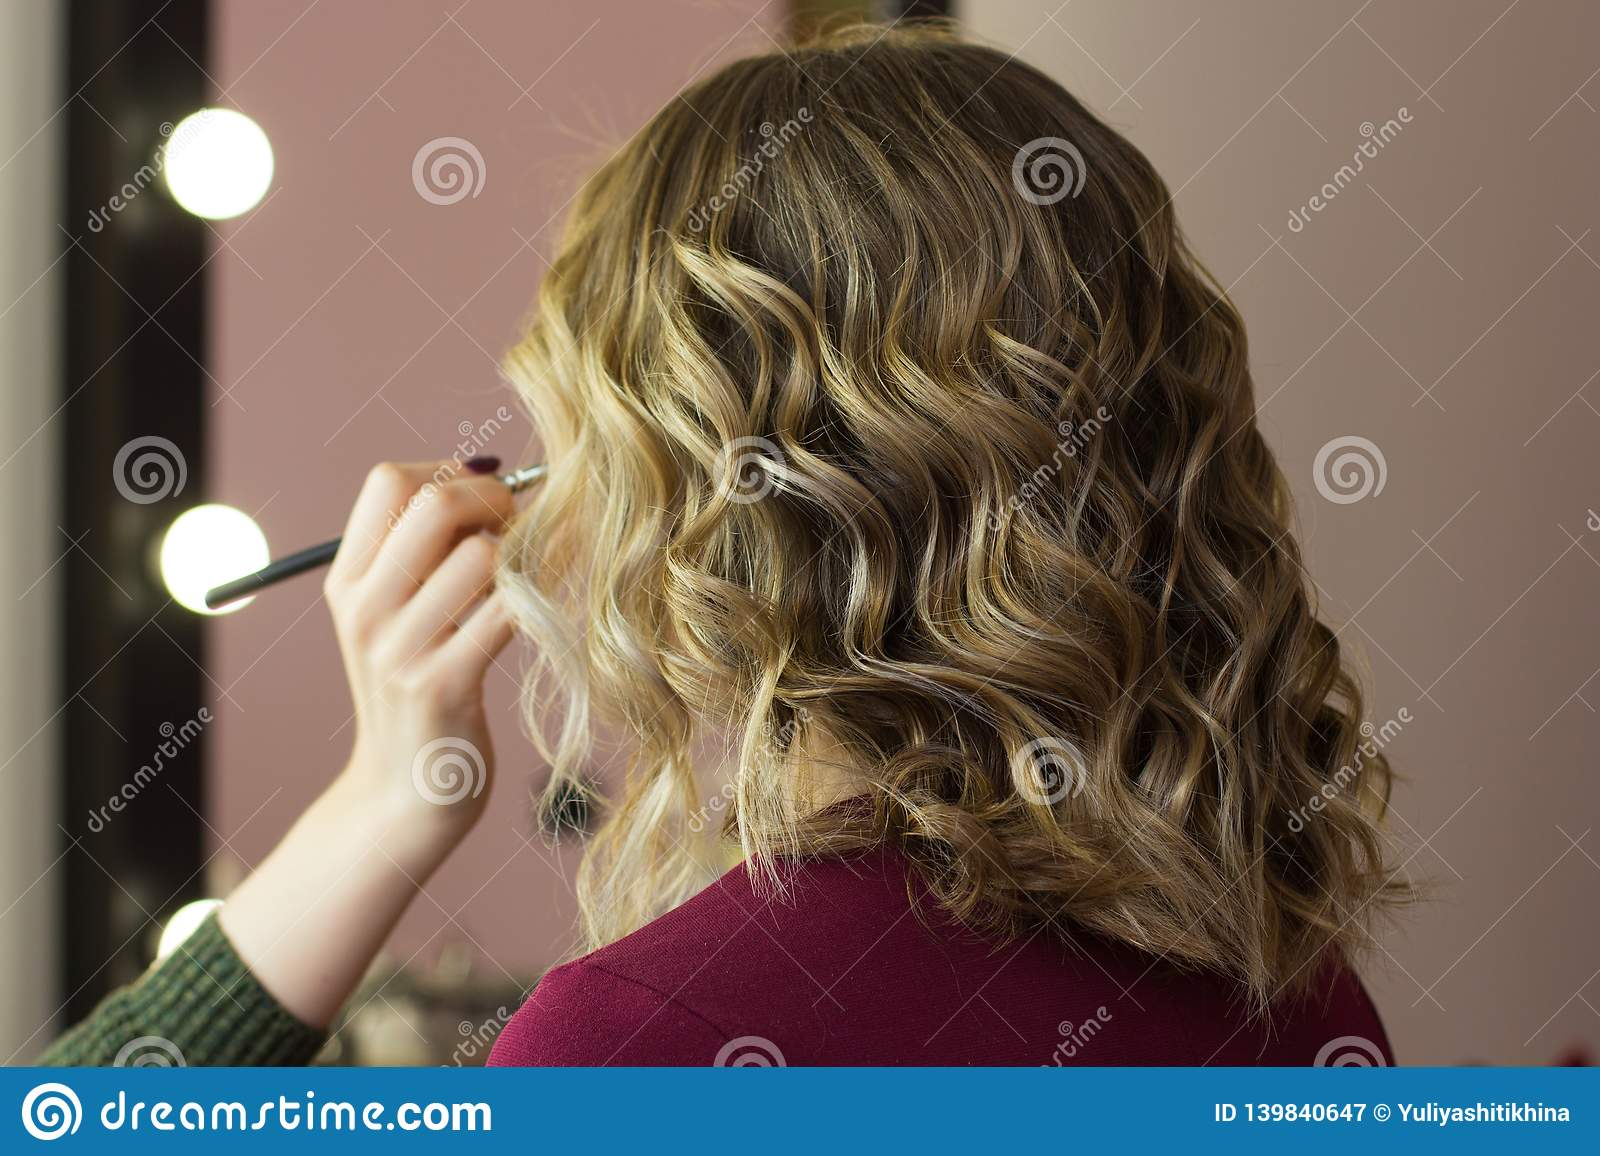 Styling hair beauty makeup look